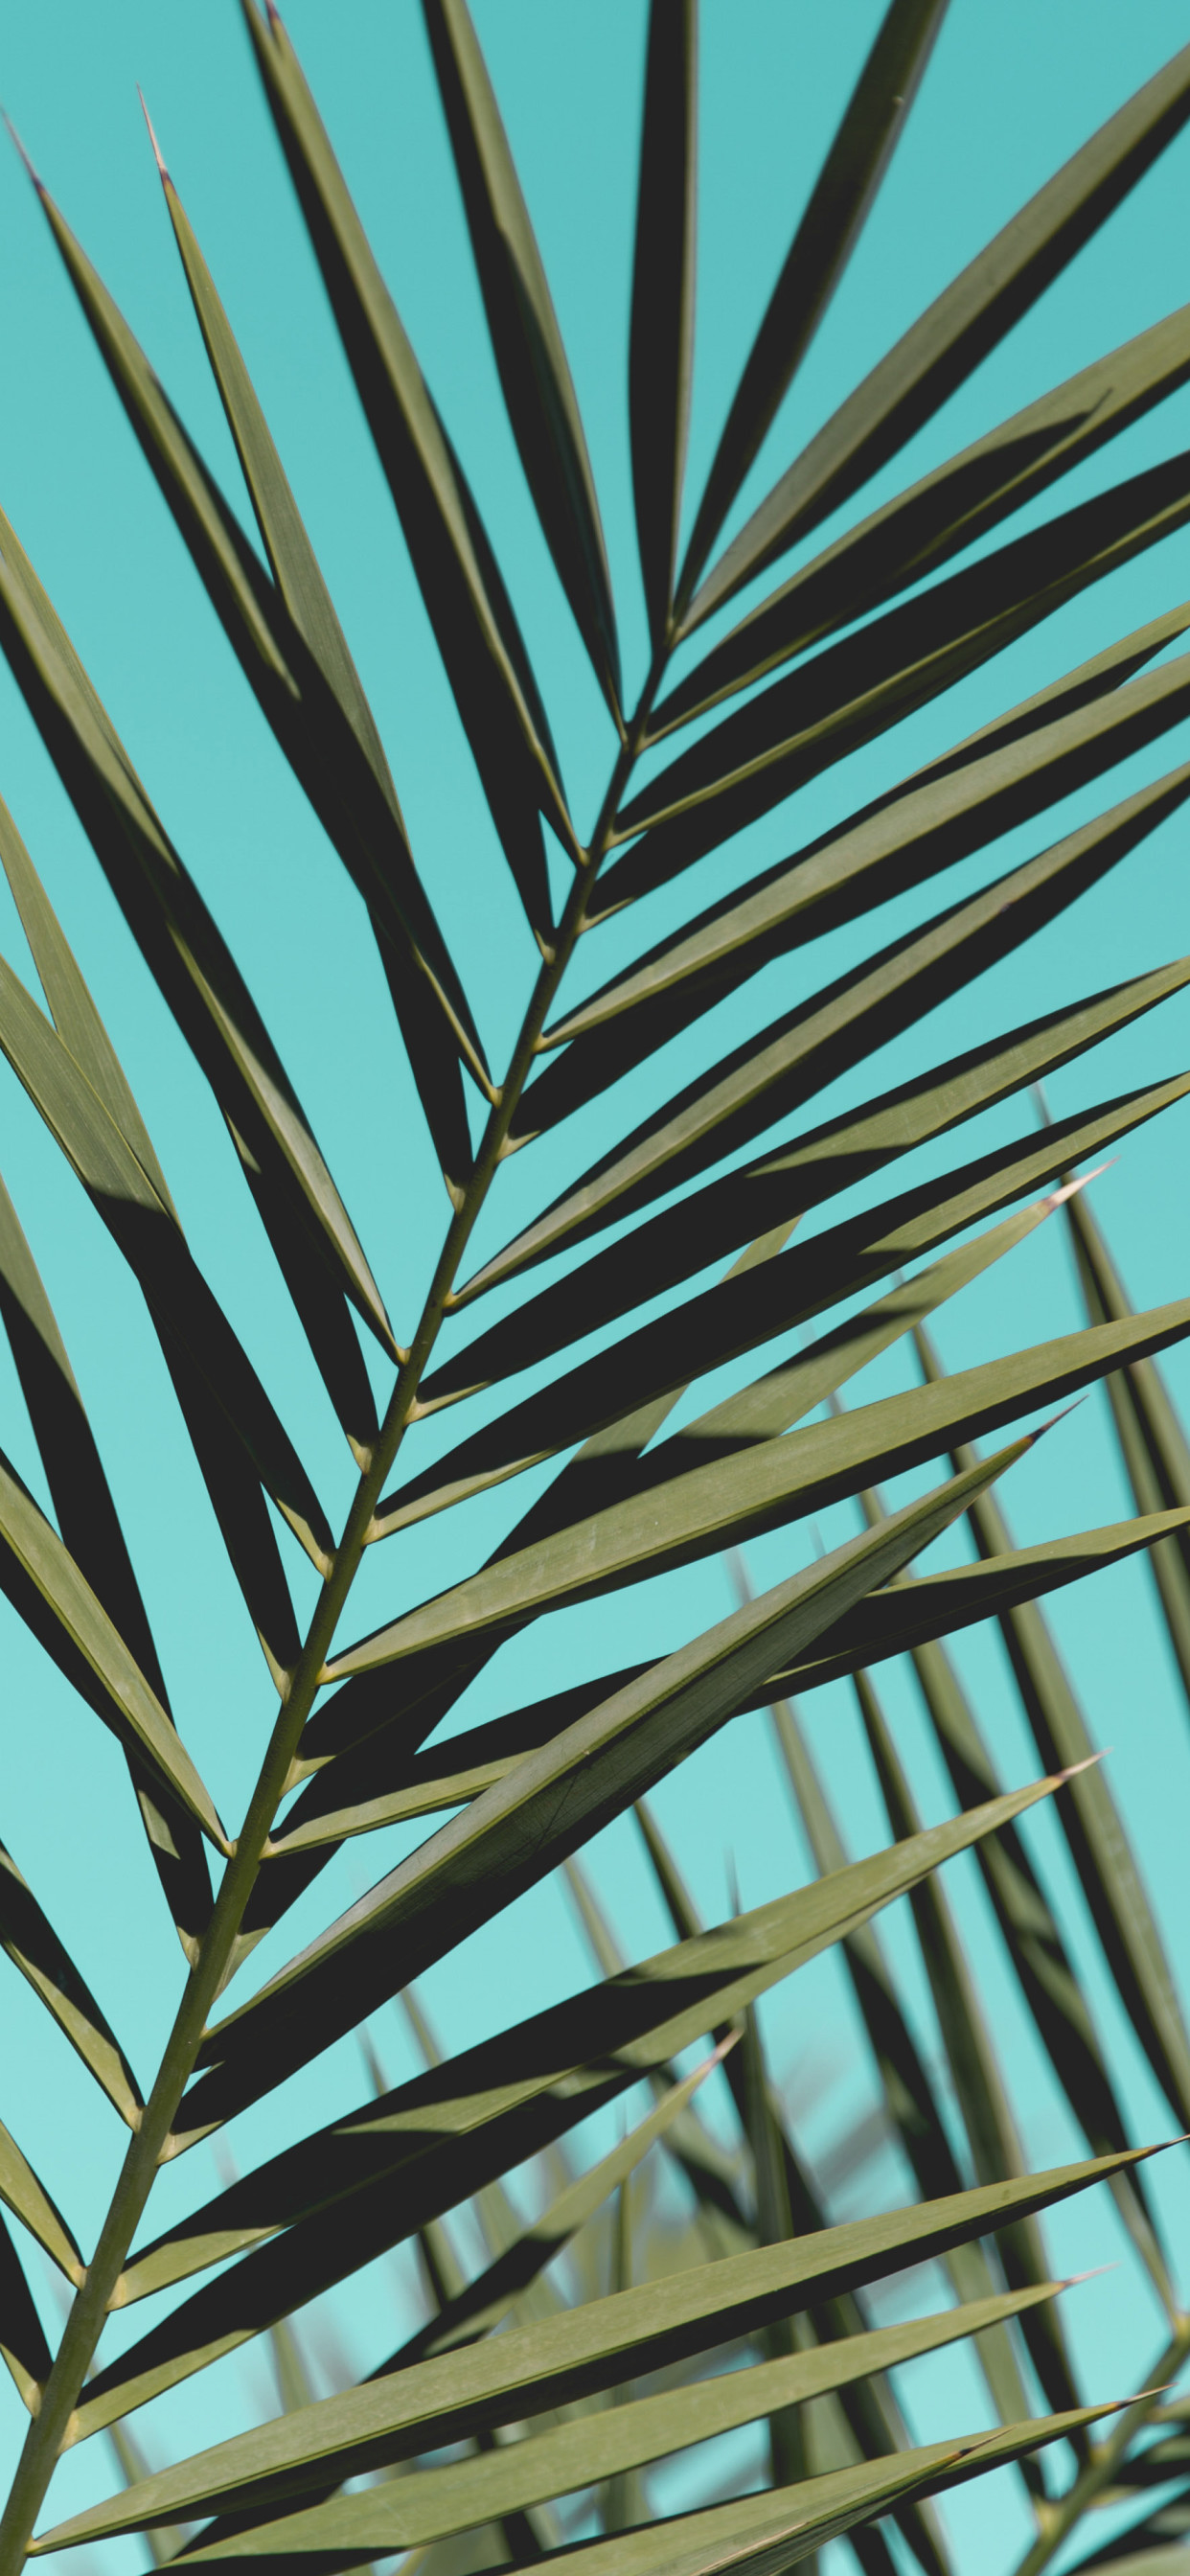 Palm Leaves Sunlight Day Green Iphone Xs - Psalm Trees - HD Wallpaper